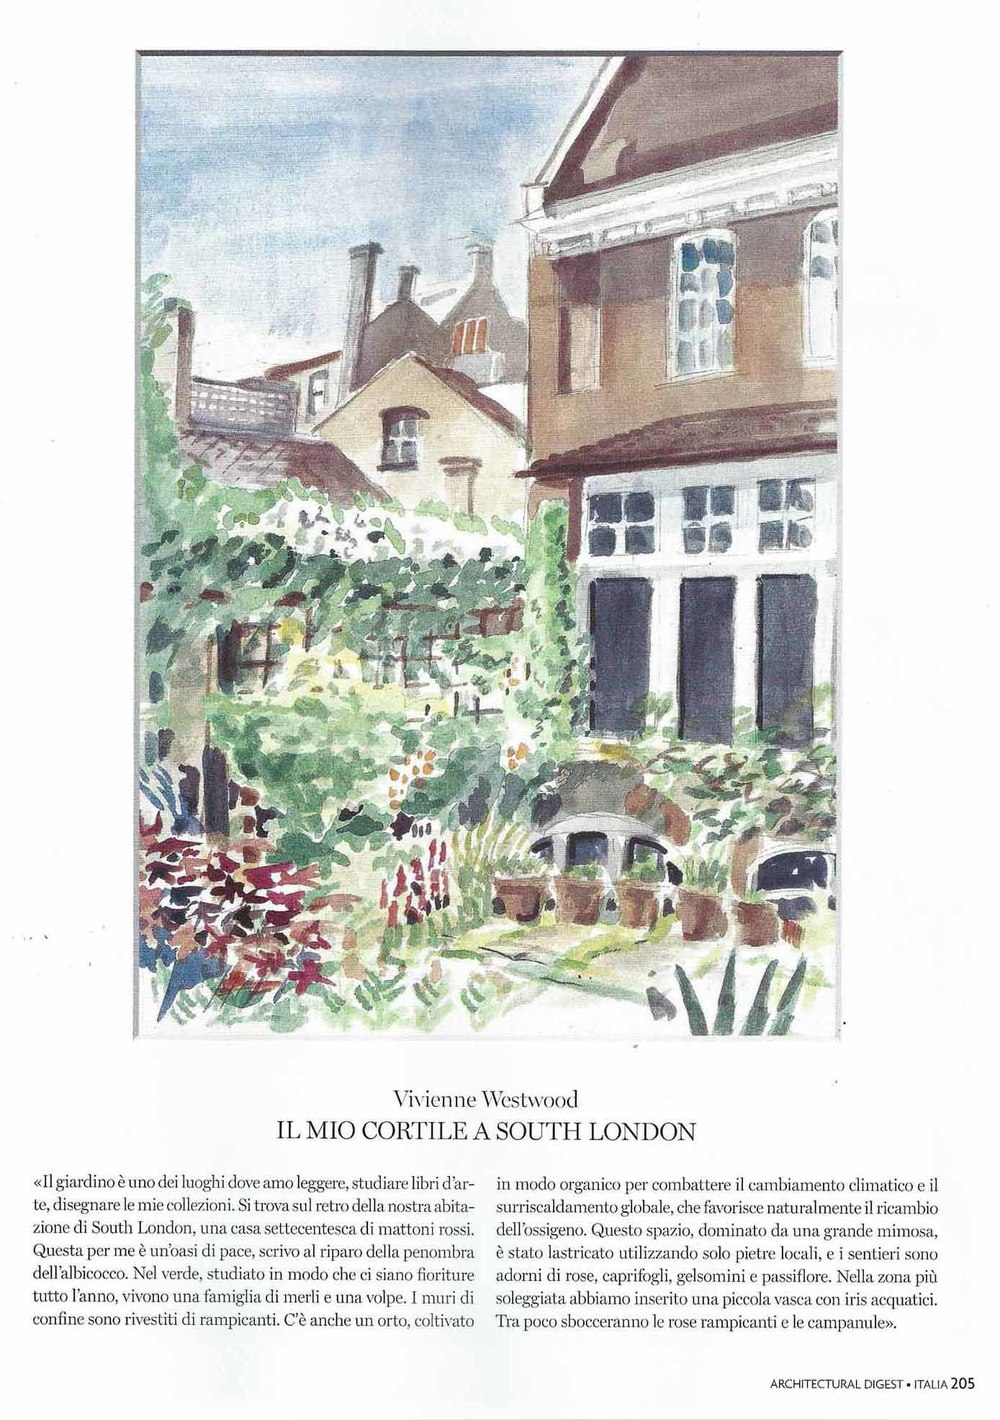 Vivienne Westwood - South London Garden